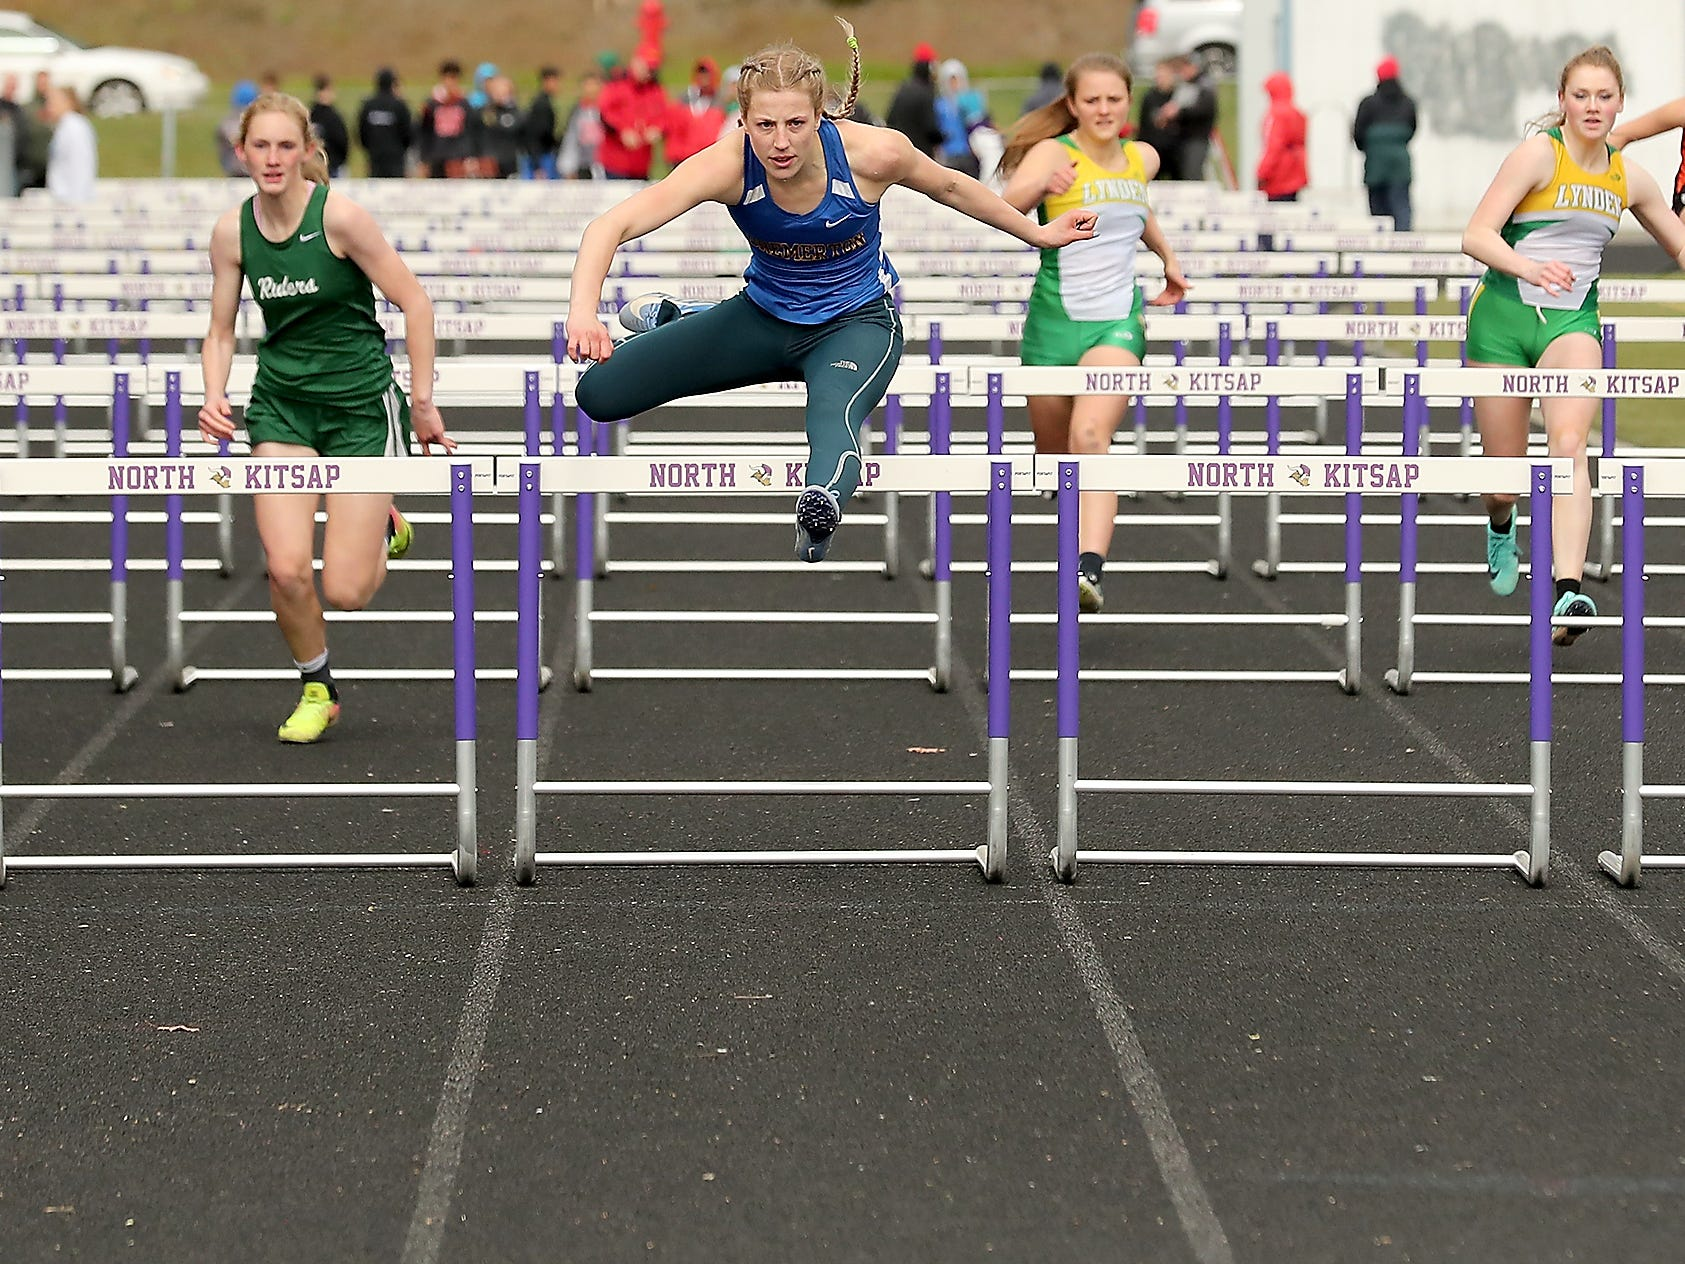 Bremerton's Lauryn Chandler clears the last hurdle for a first place finish in toe 100 Meter Hurdles at the Lil' Norway Invitational on Saturday, April13, 2019.